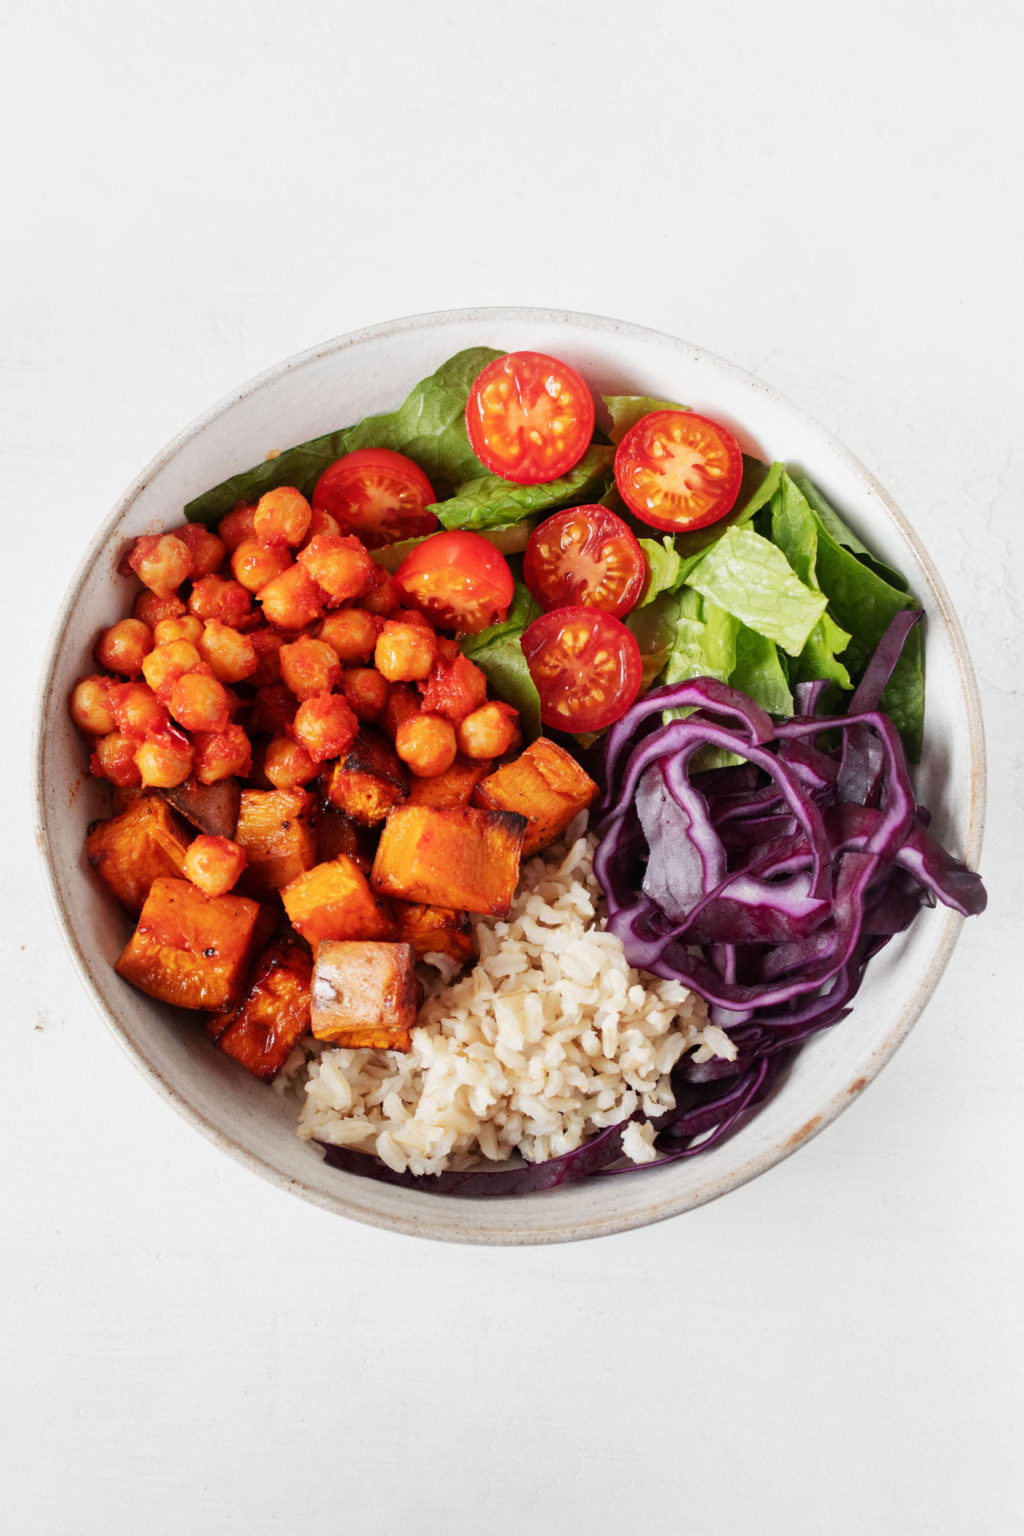 An overhead image of a white bowl containing seasoned chickpeas, rice, and vegetables.